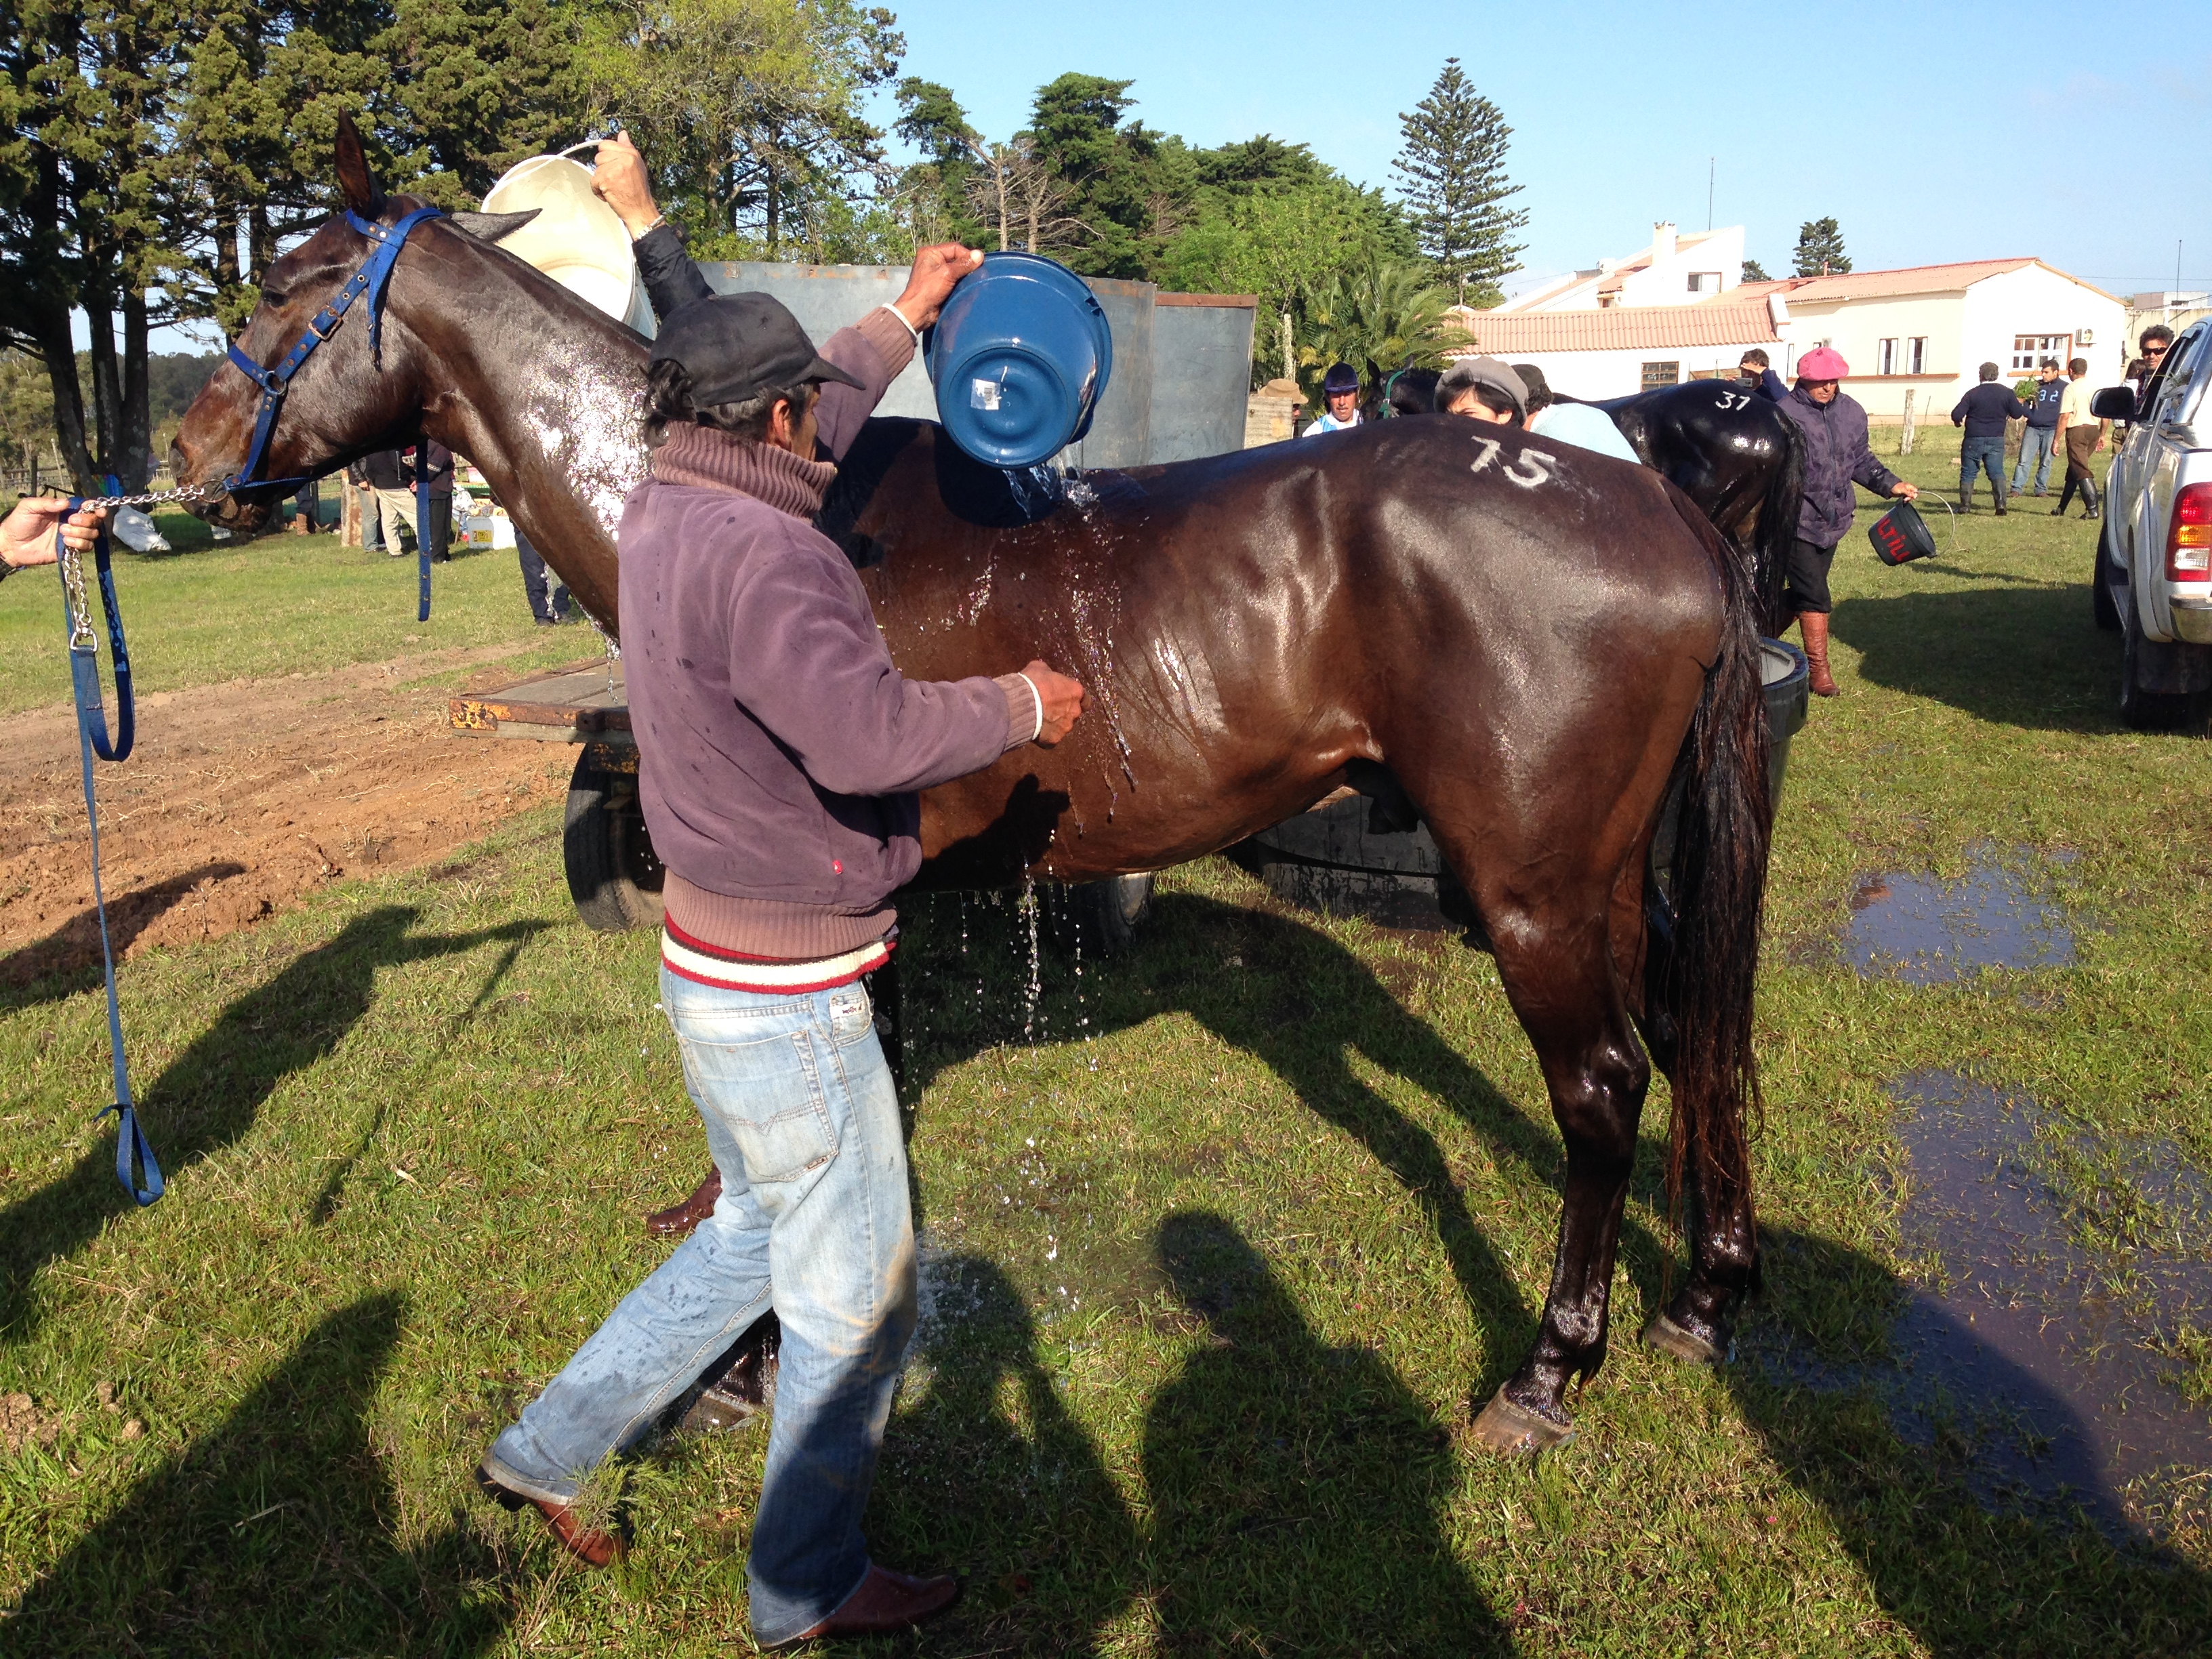 A man bathes his horse during a break in the race.